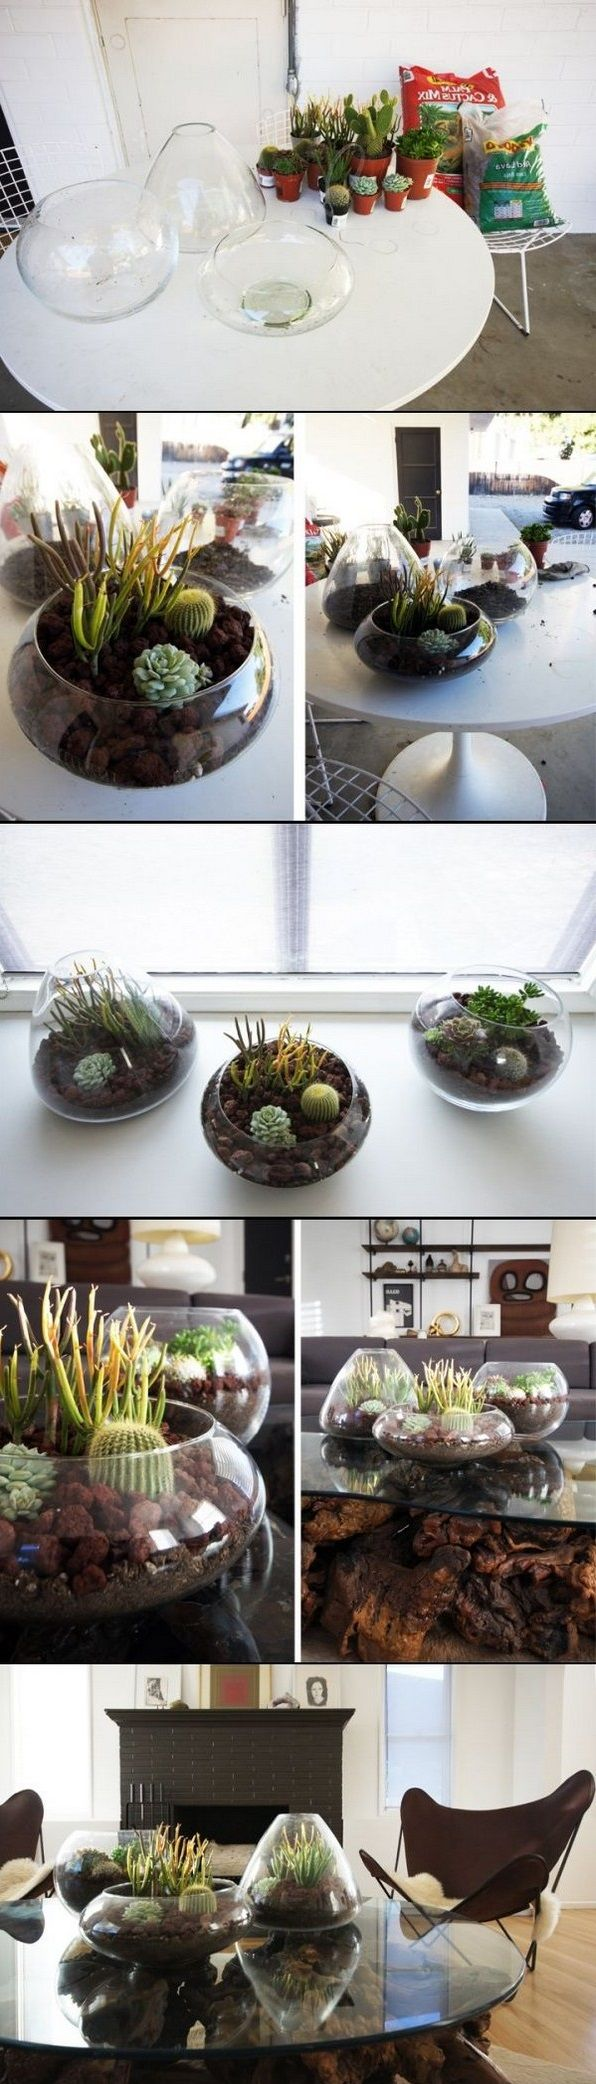 DIY Terrarium ideas